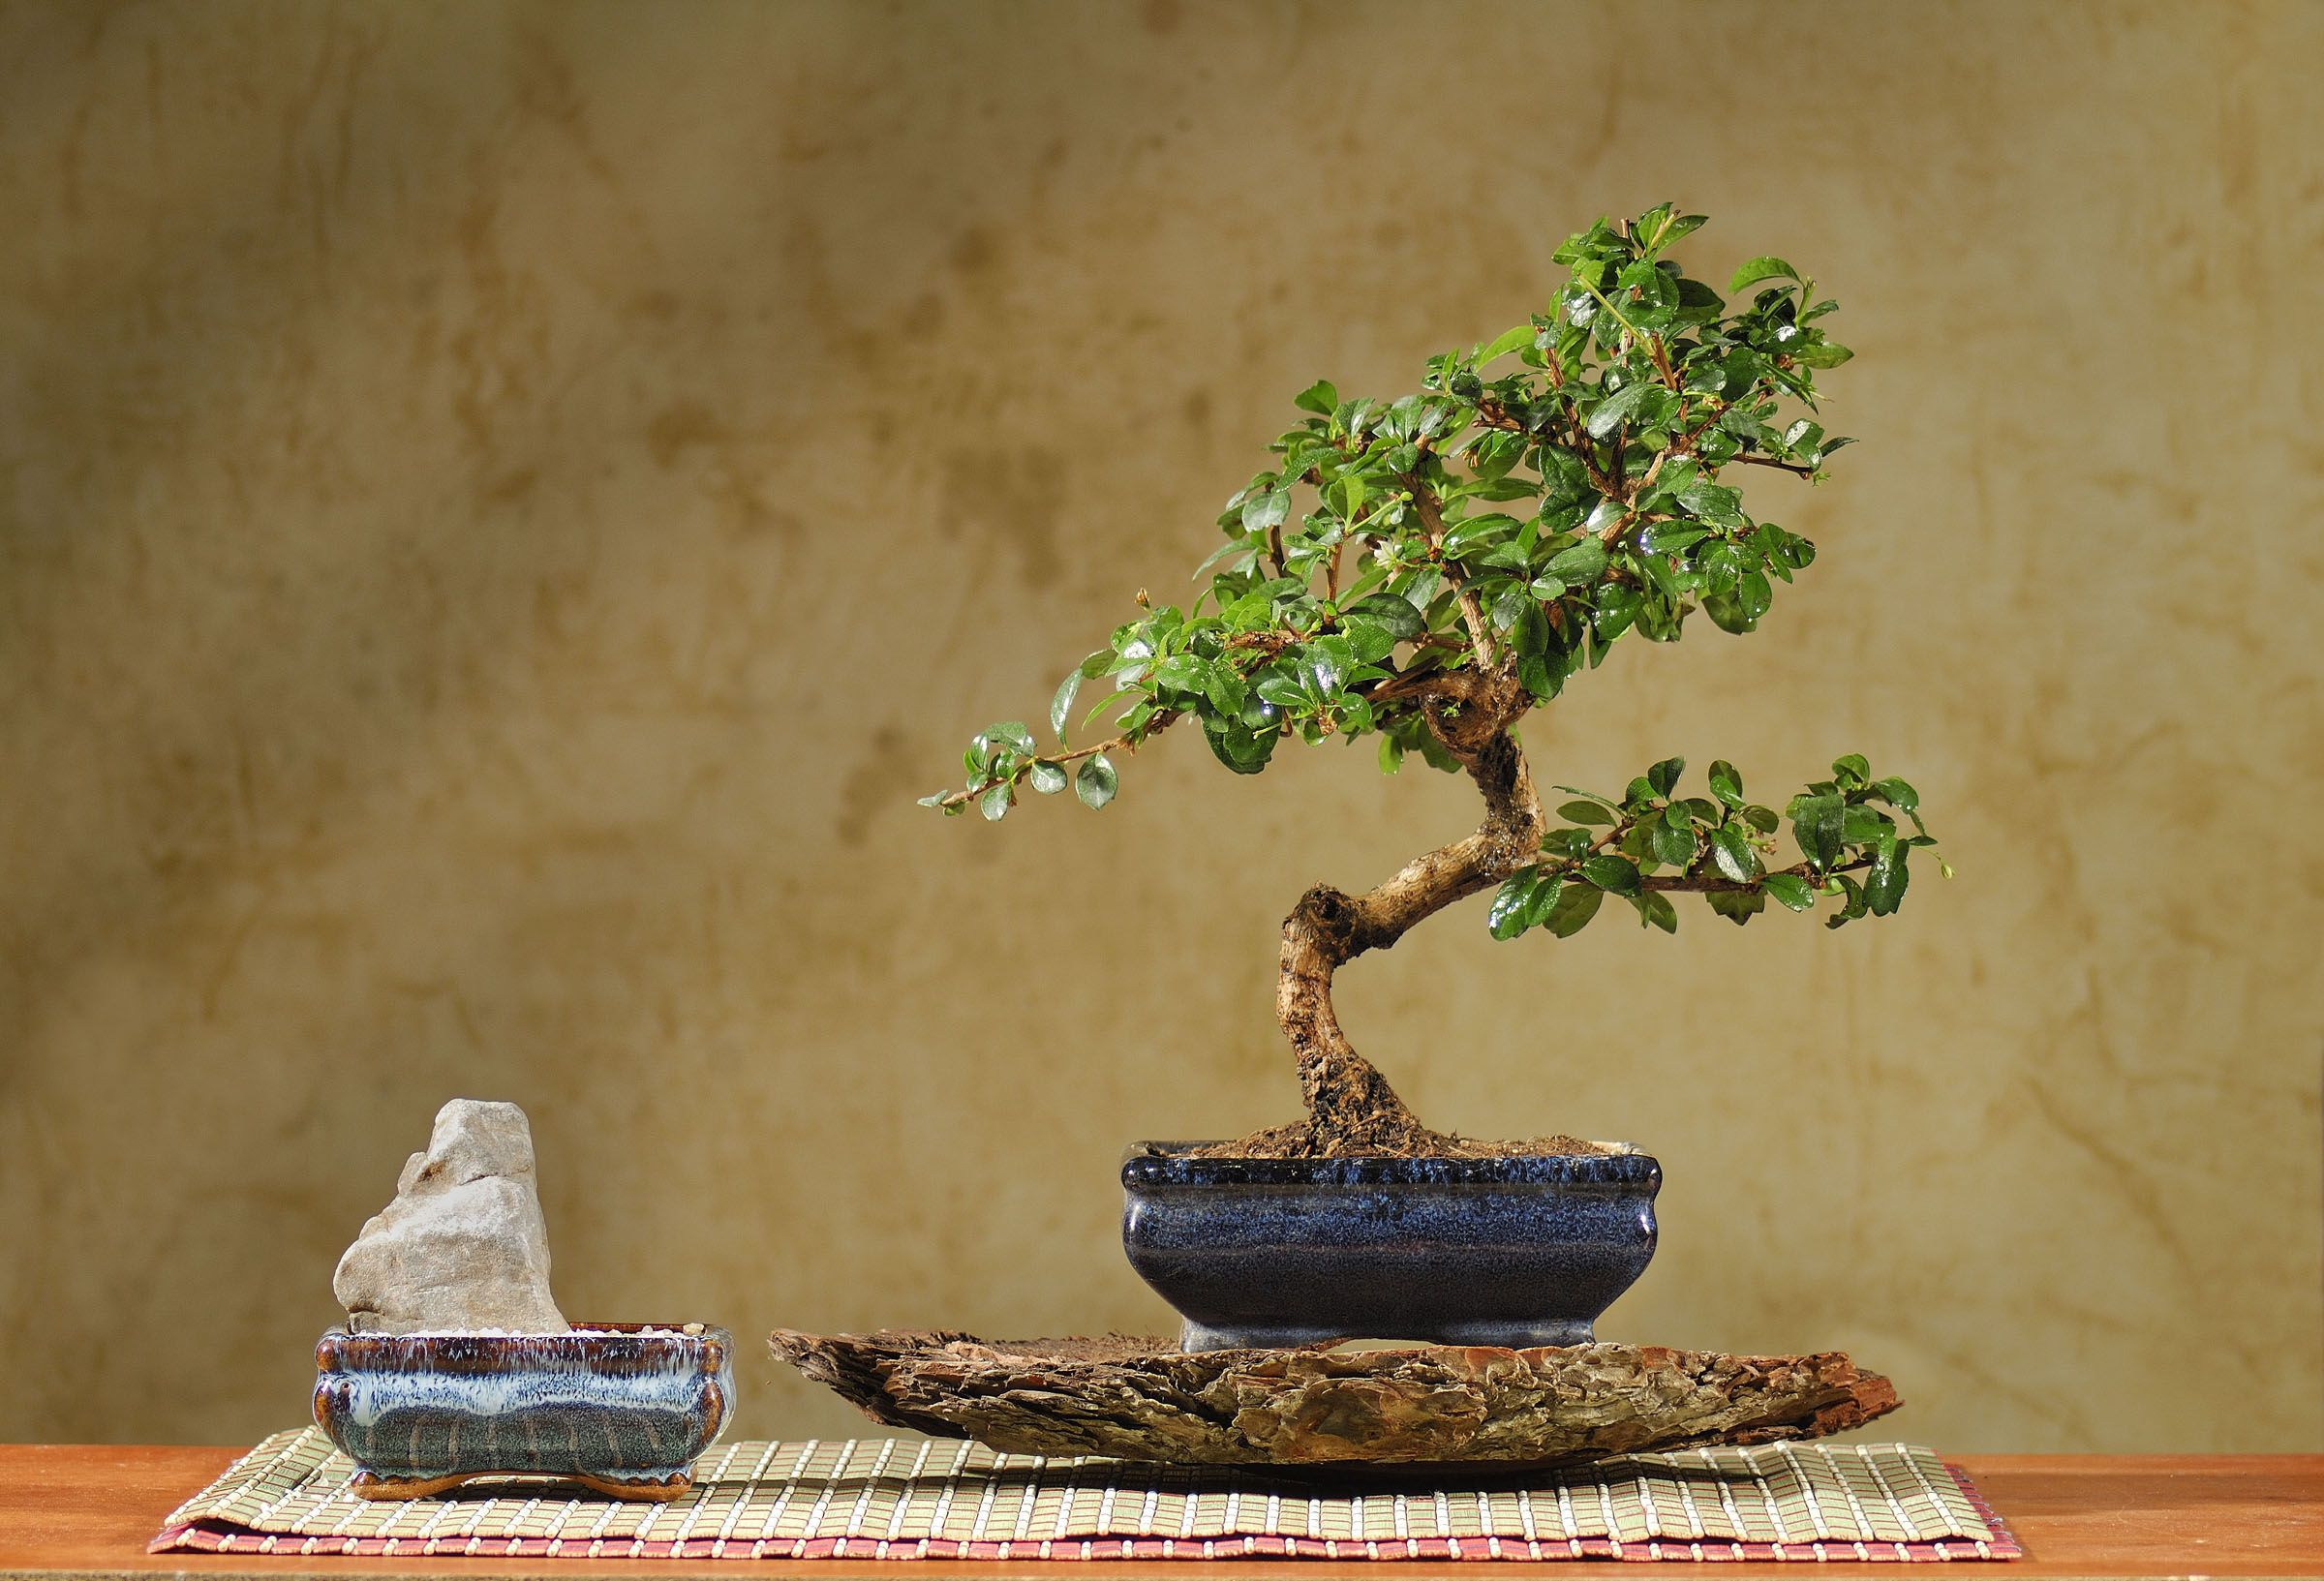 I Just Bought A Fukien Tea Bonsai Woohoo This Is A Design That I Like A Lot Of That Specific Tree Bonsai Fukien Tea Bonsai Bonsai Flower